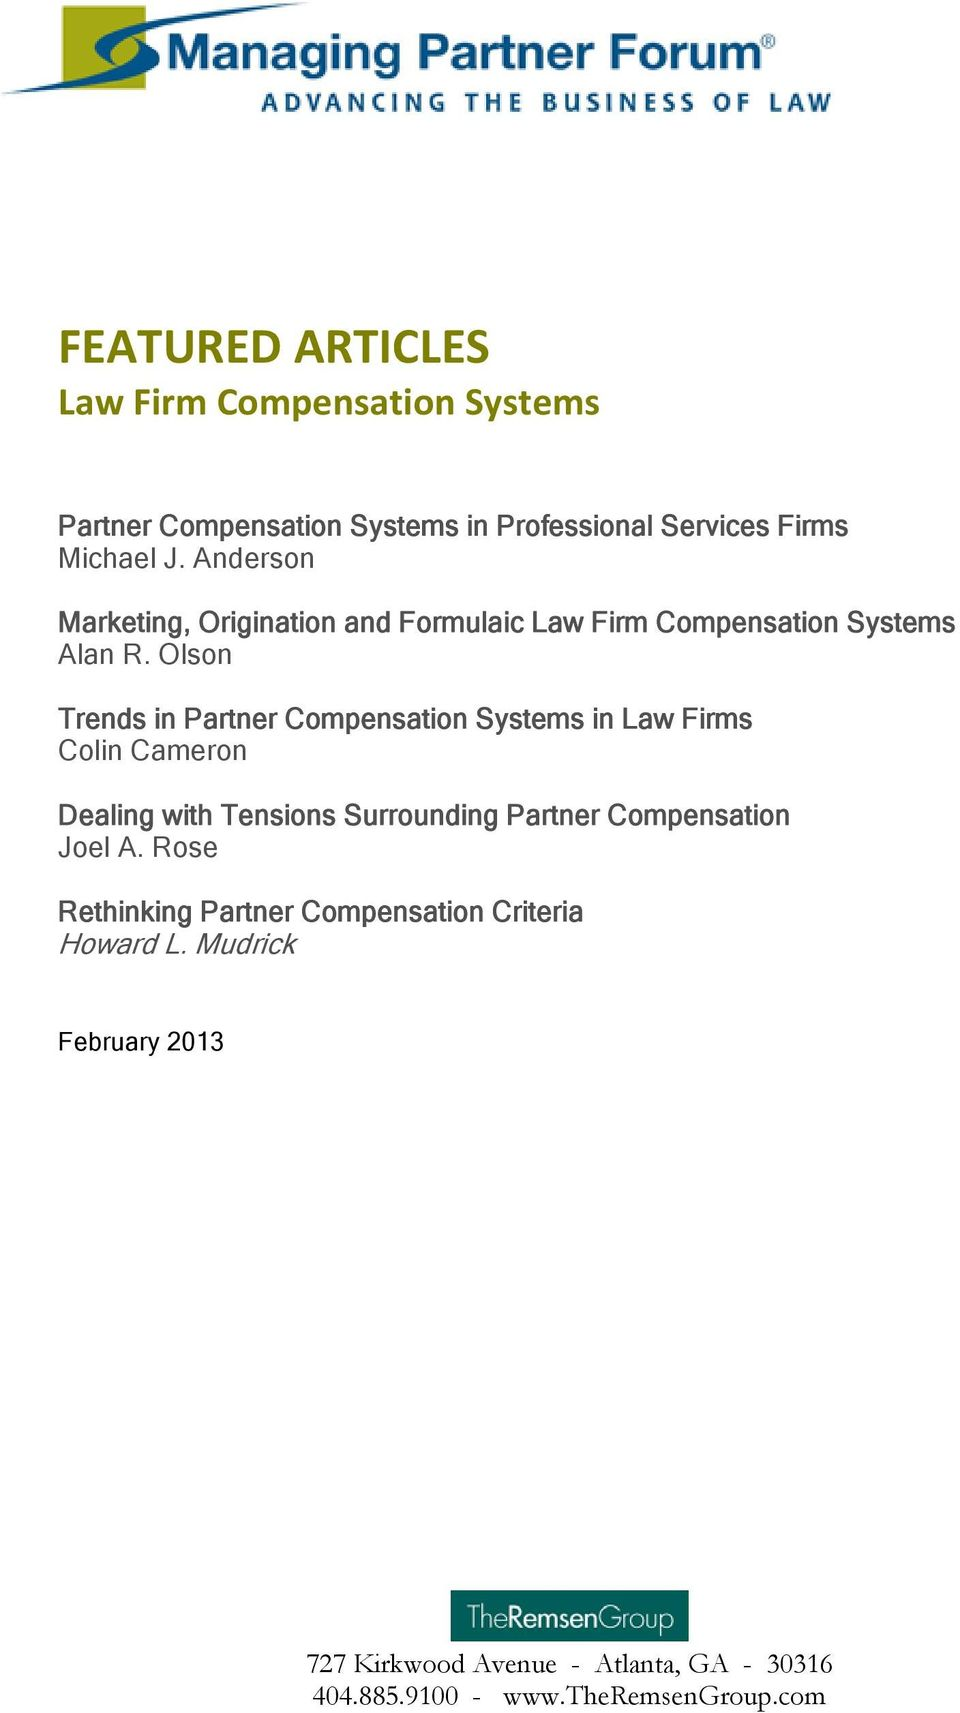 FEATURED ARTICLES Law Firm Compensation Systems - PDF